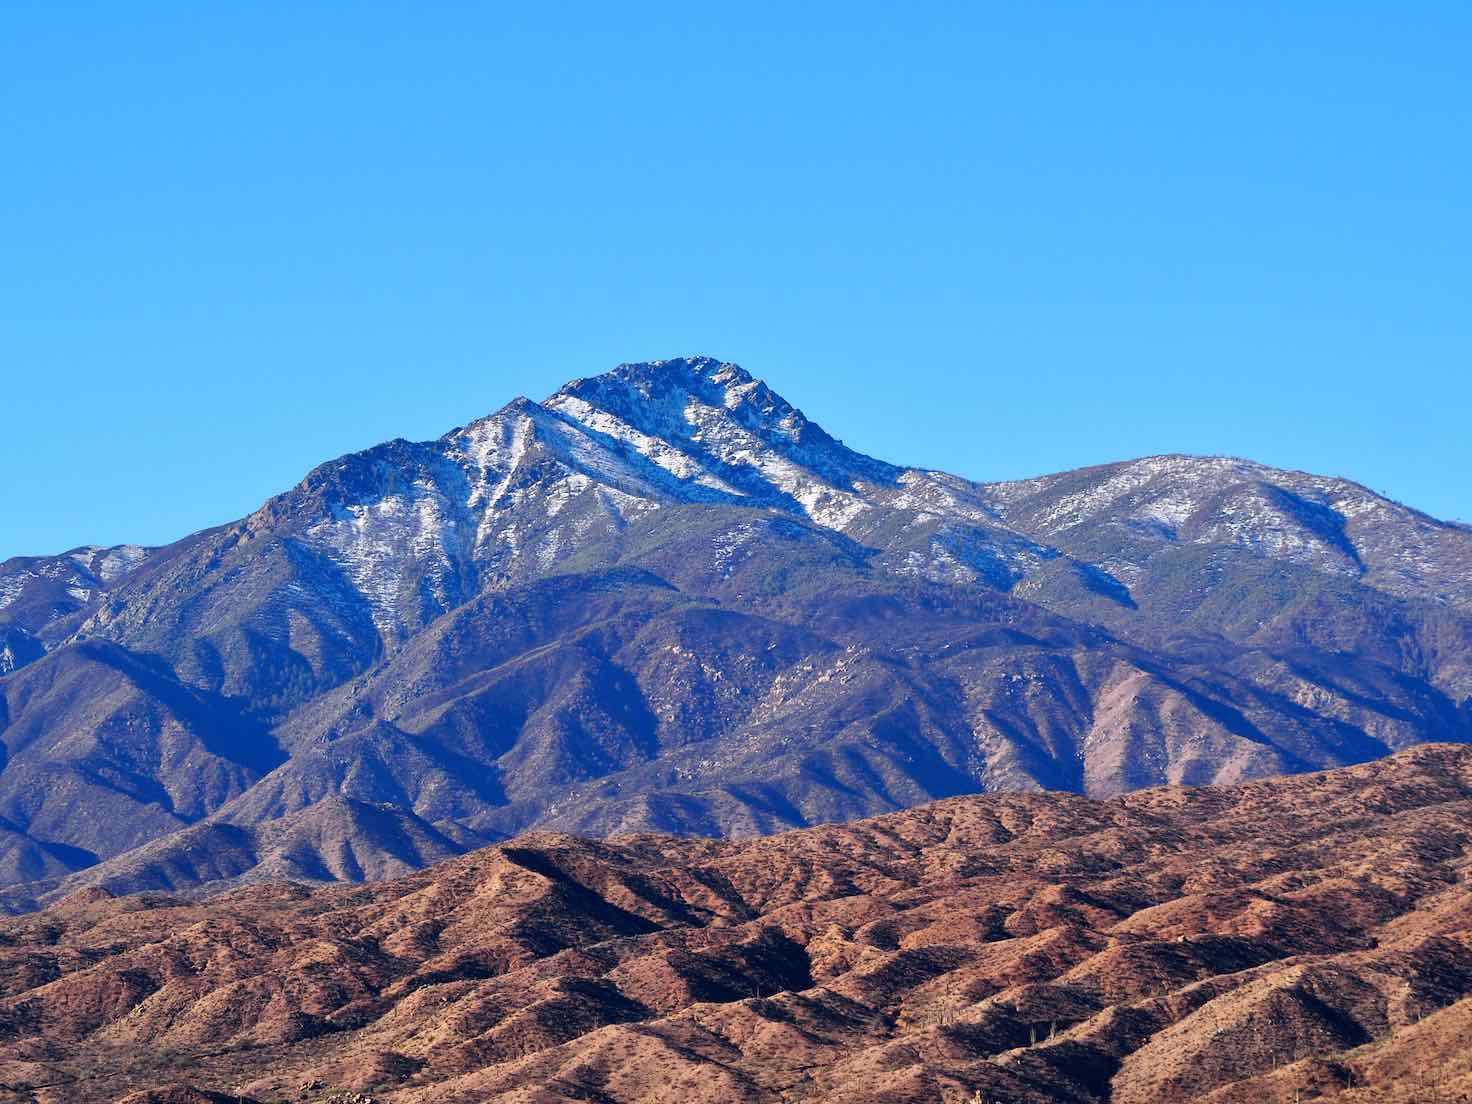 The backside of the Four Peaks by Theodore Roosevelt Lake.